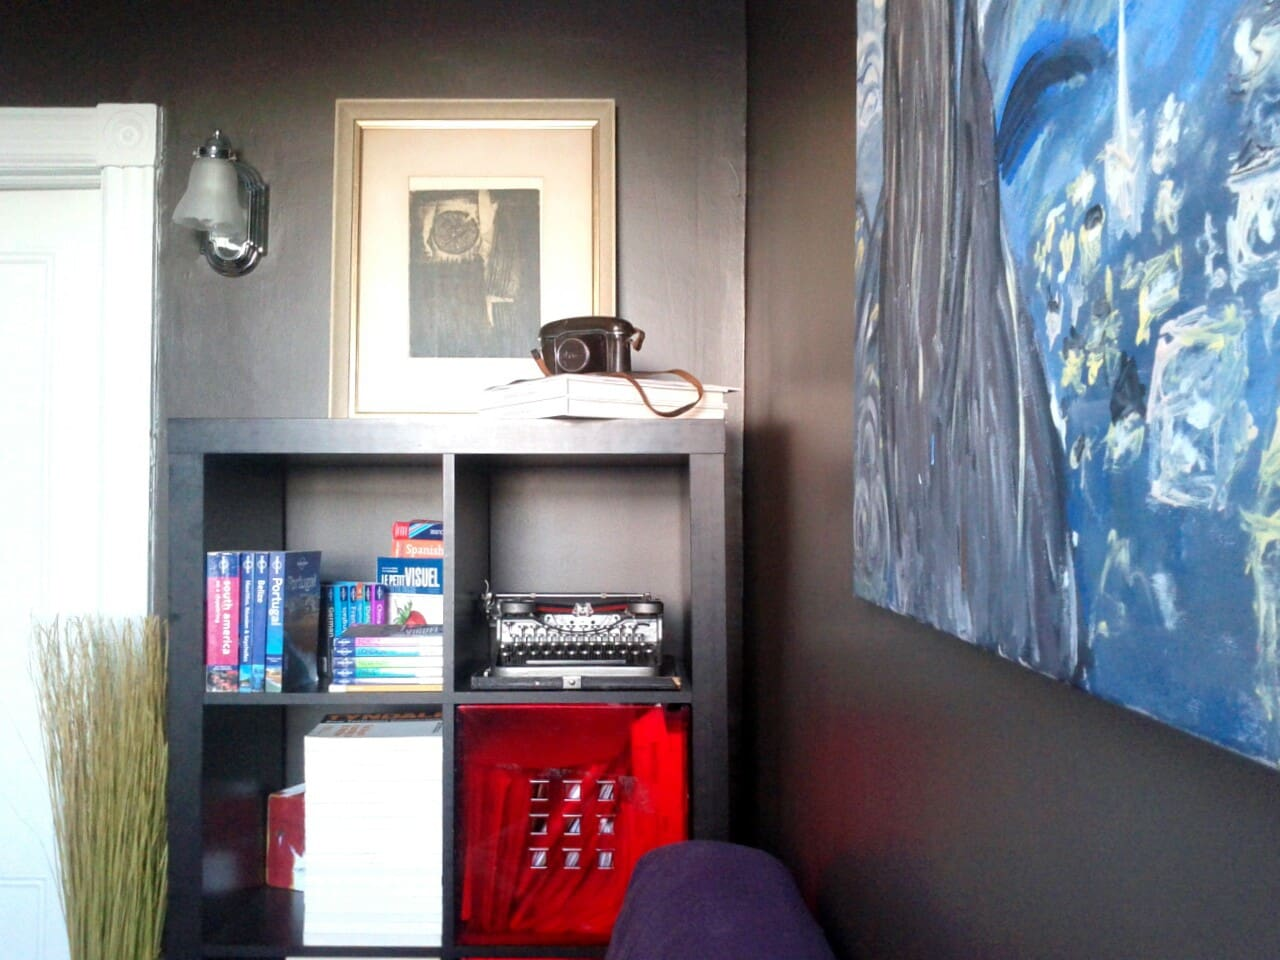 the guest room: travel and language books, typewriter, and lots of books